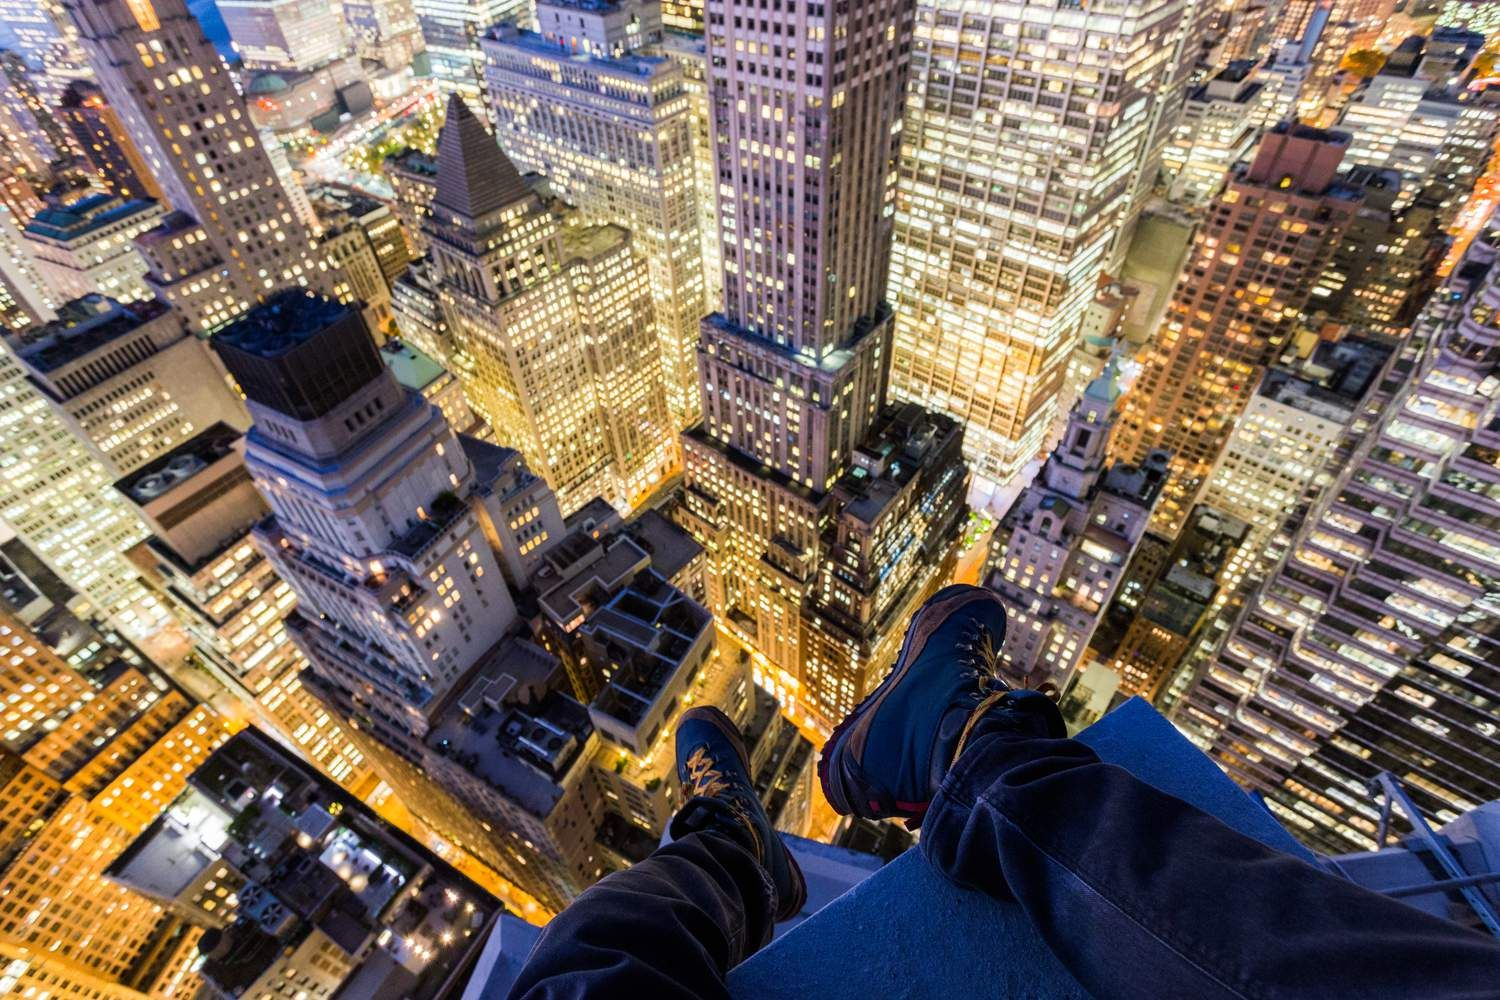 The Best Daredevil Rooftopping Photos Daredevil City And - Daredevil duo climb hong kongs buildings capture like youve never seen